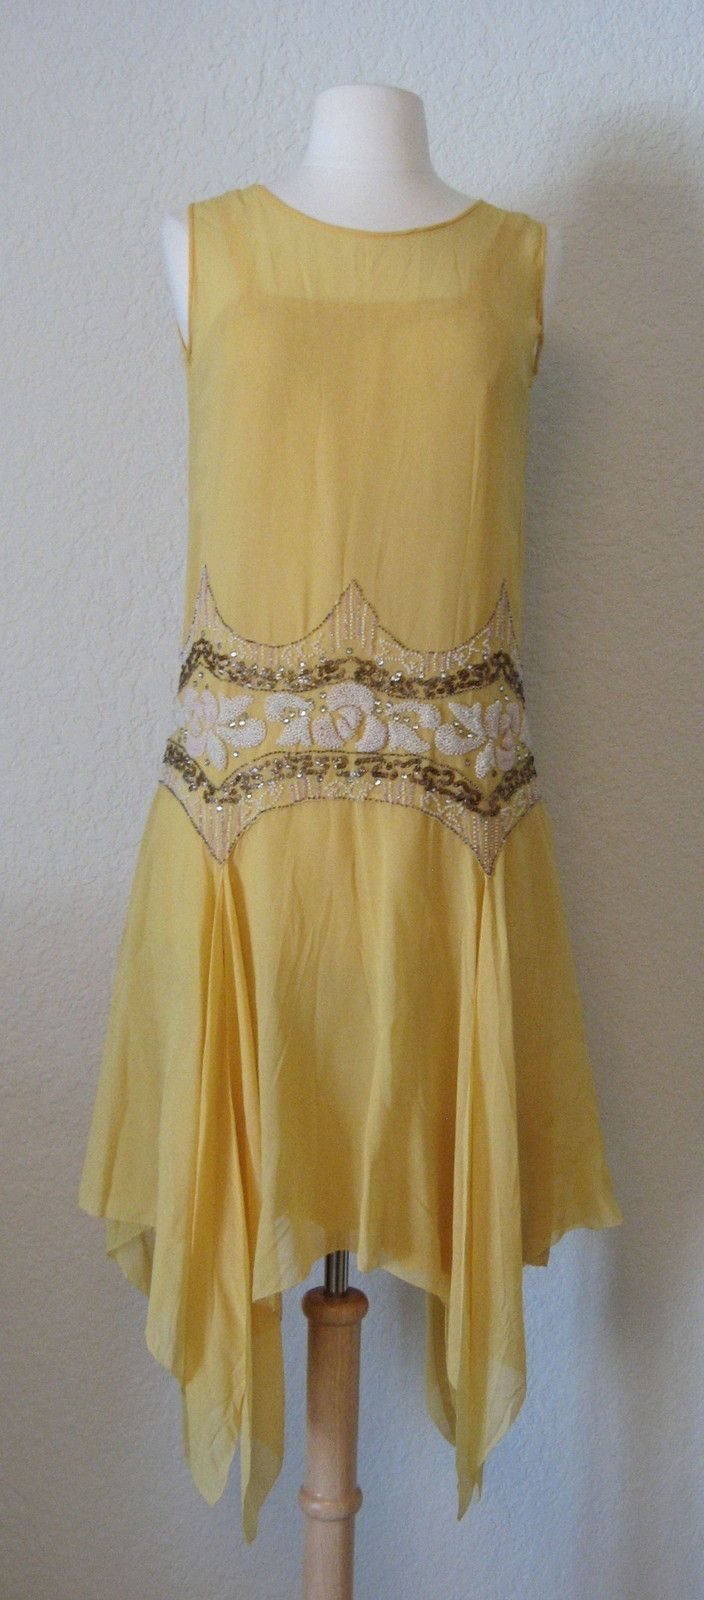 Yellow drop waist women dress gatsby style